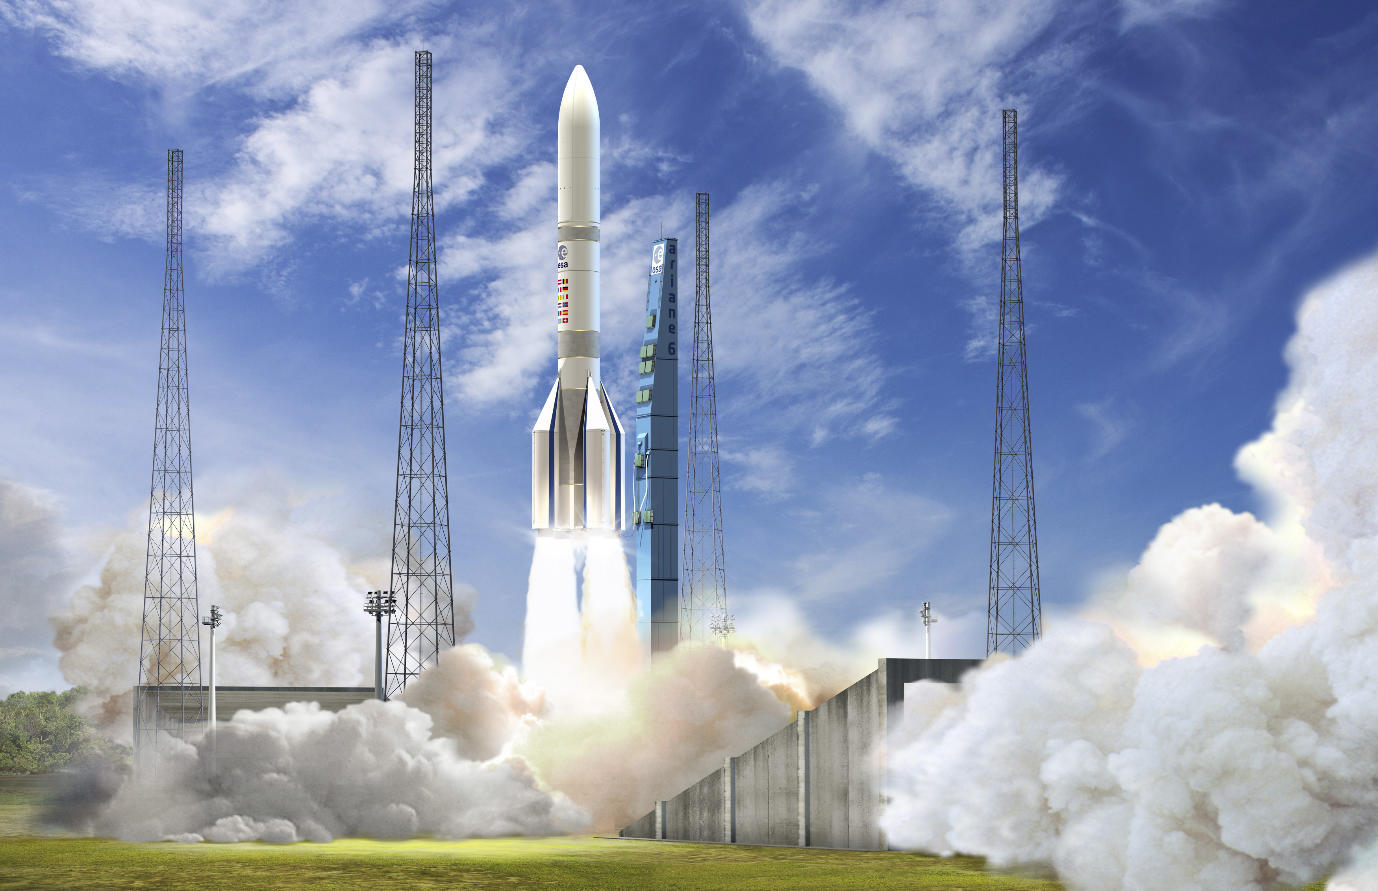 ArianeGroup to study Moon mission